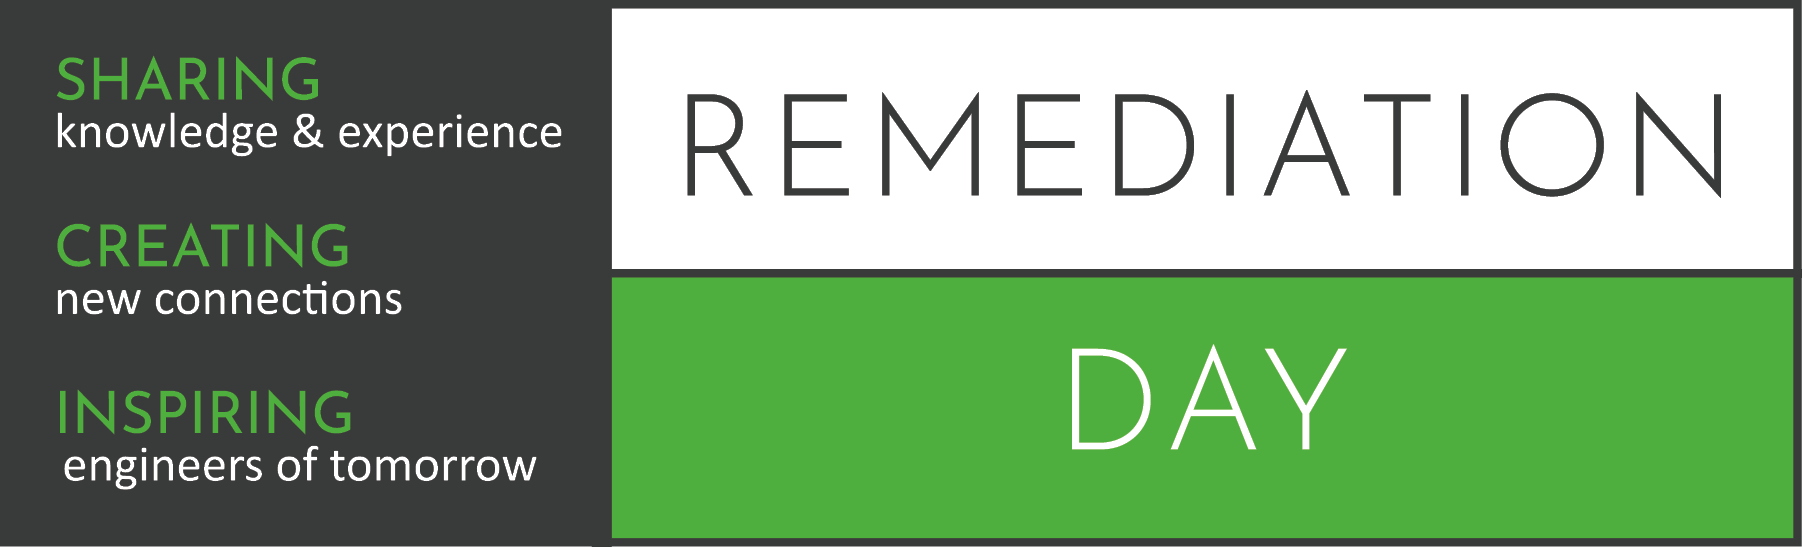 https://www.remediationday.nl/wp-content/uploads/2019/10/Logo-Remediation-Day.png